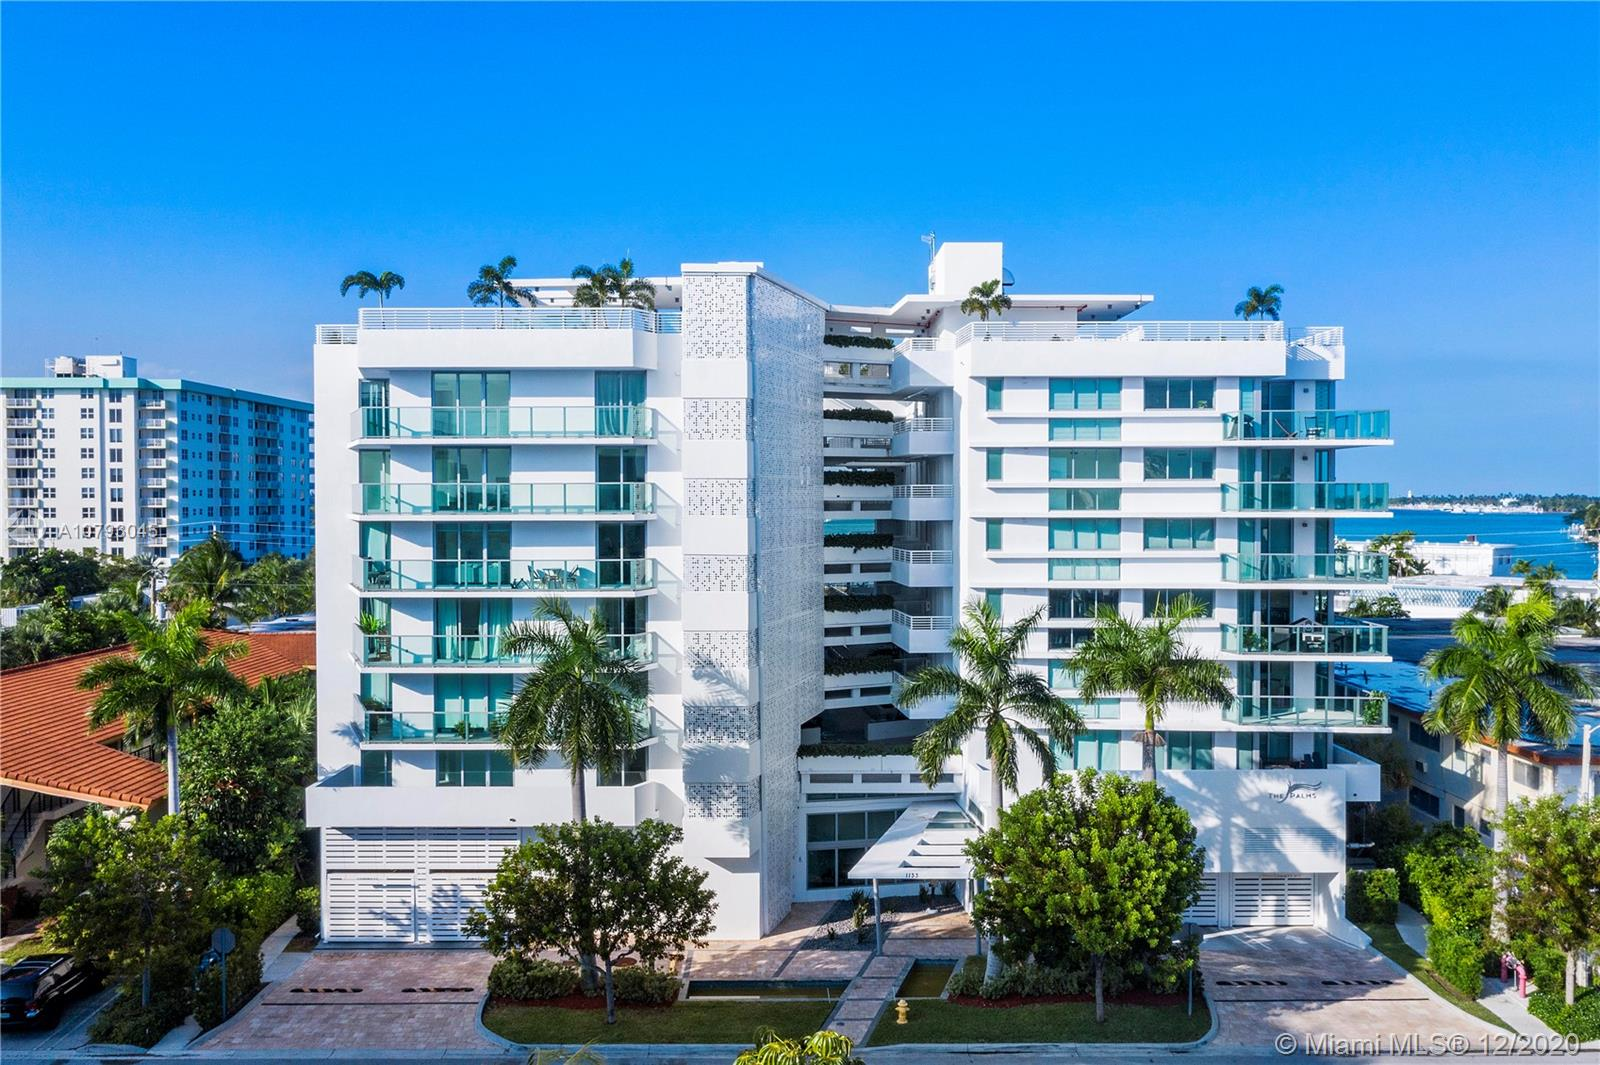 Completed in 2018, The Palms Residences is a 42 unit boutique style building in sought after Bay Harbor Islands. This bright, corner unit offers two balconies, stainless steel appliances, washer and dryer inside, and wine cooler. The unit faces north towards Biscayne Bay and has beautiful views of the sandbar and Haulover. Unit comes with a large storage unit directly in front of the apartment. Two garage covered parking spaces. Building has rooftop pool and hot tub with community grill and sink. Walking distance to A+ schools, great restaurants, shopping and places of worship. Unit is rented at $2800 per month through February 28th, 2021.